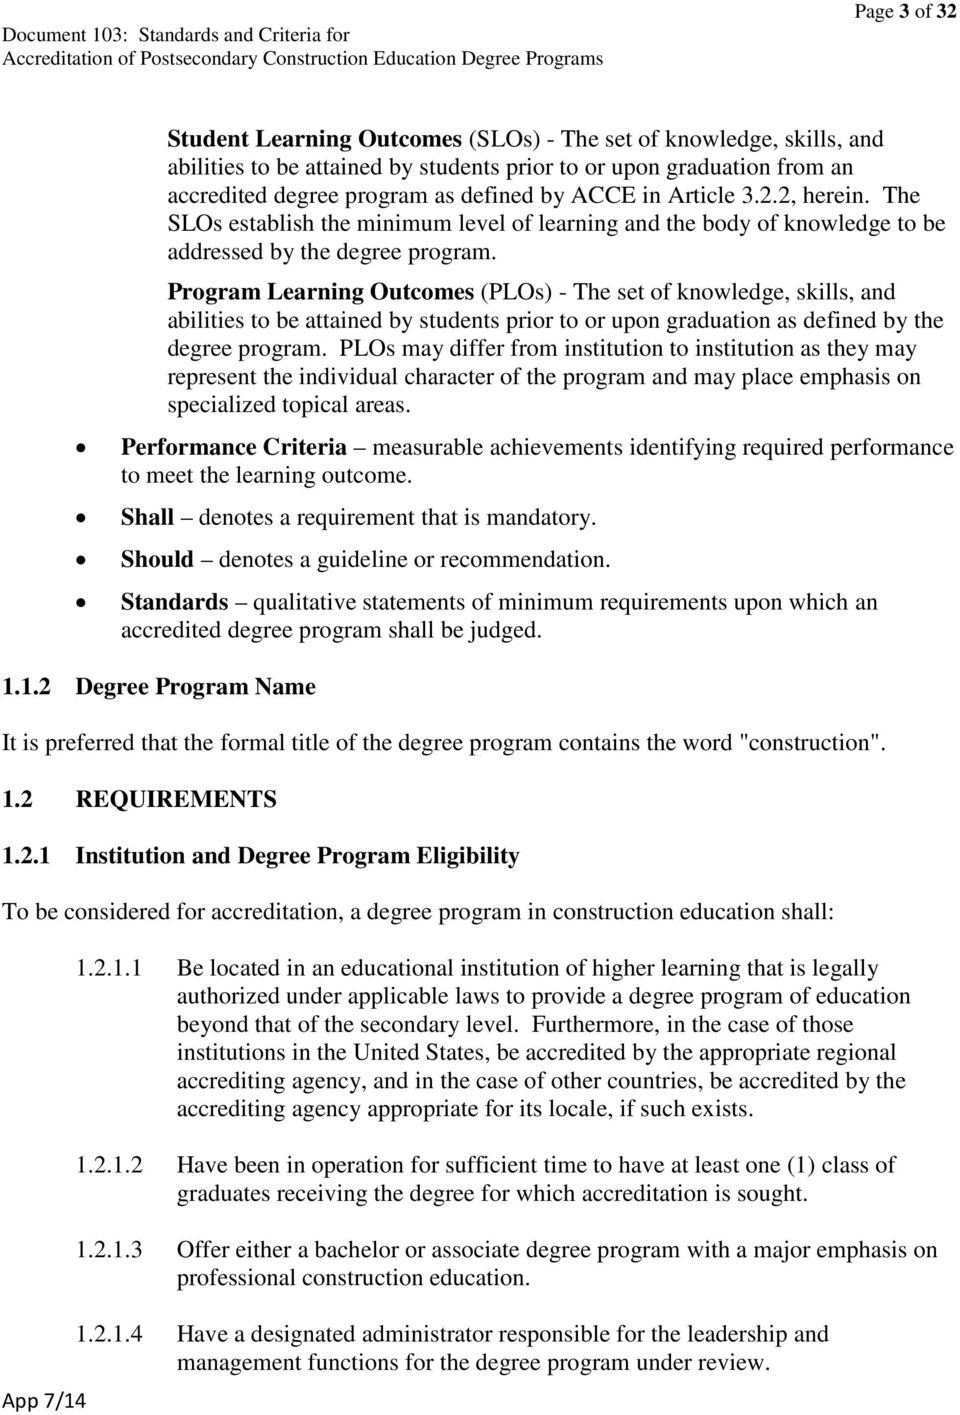 Program Learning Outcomes (PLOs) - The set of knowledge, skills, and abilities to be attained by students prior to or upon graduation as defined by the degree program.